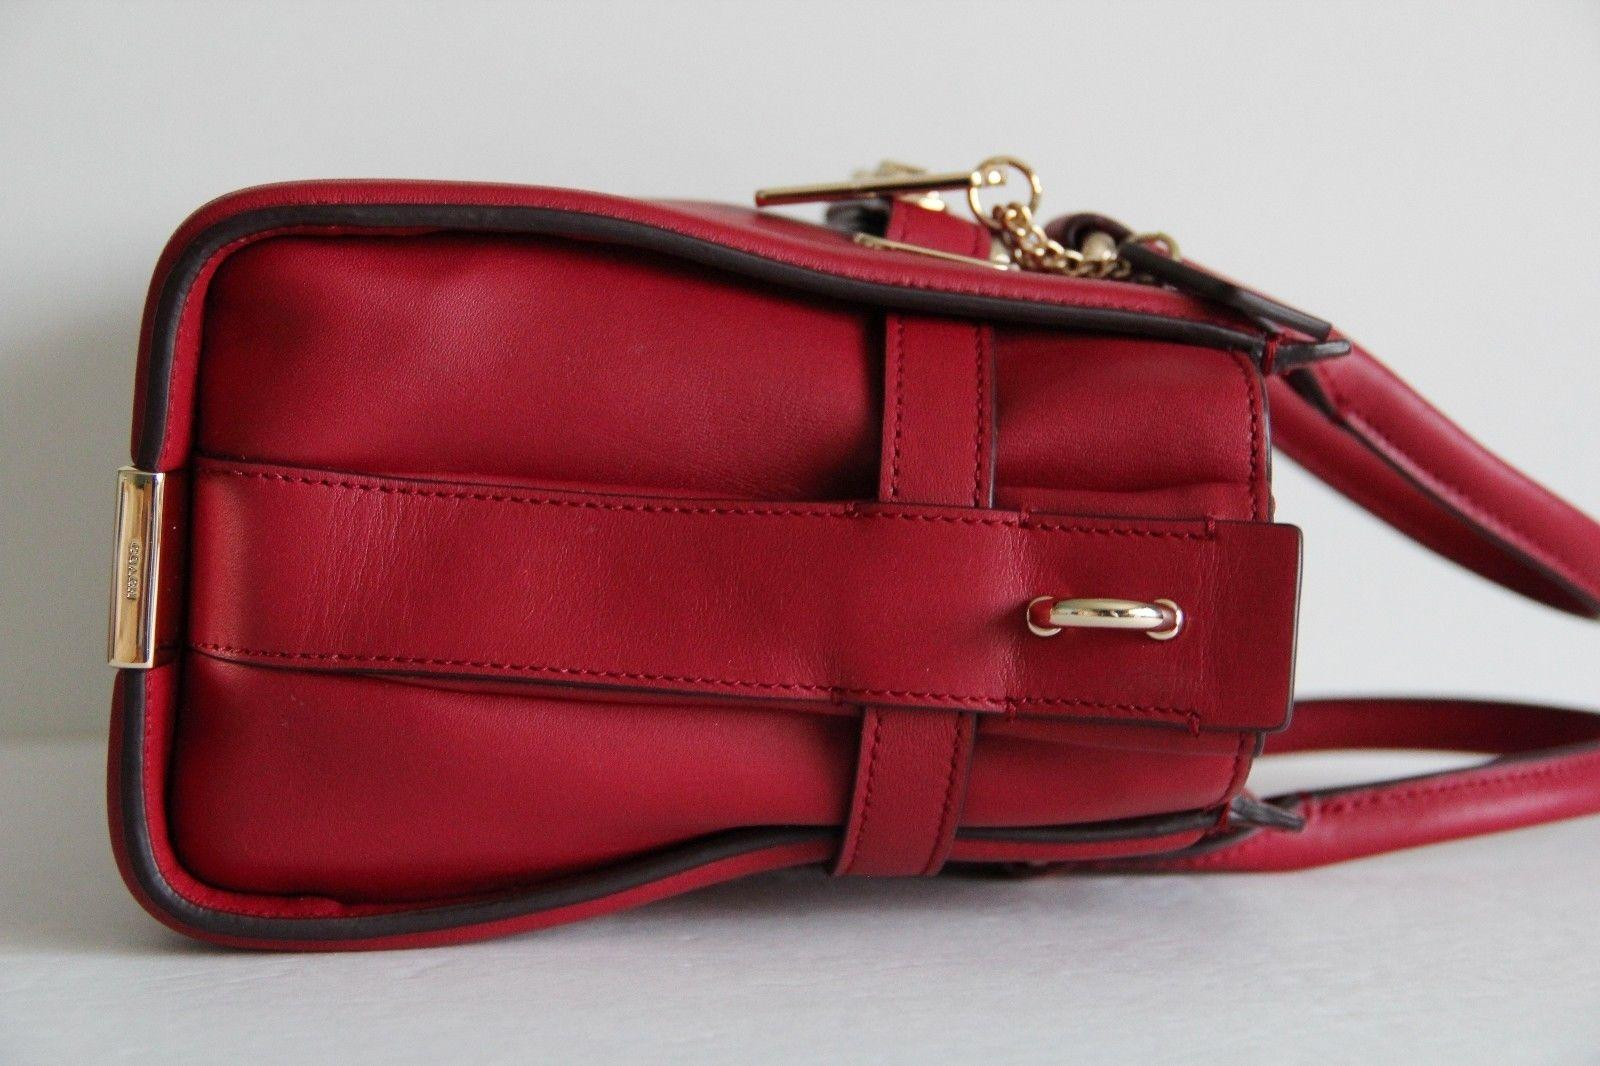 046953b3db1cf ... new arrivals coach swagger carryall 27 satchel in red currant.  123456789101112 493f5 e1dcd